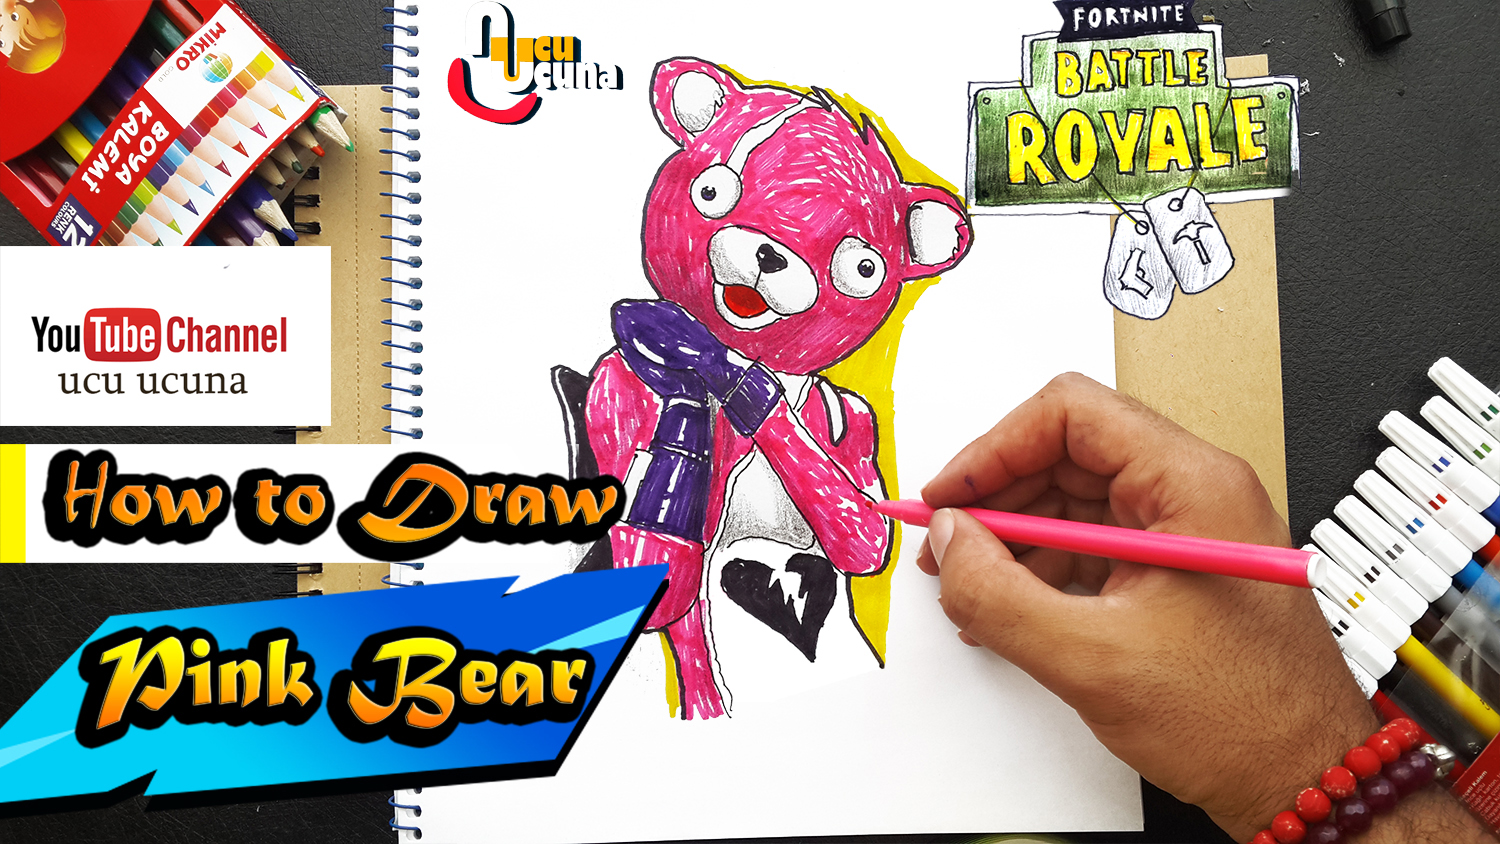 How To Draw Pink Bear Fortnite